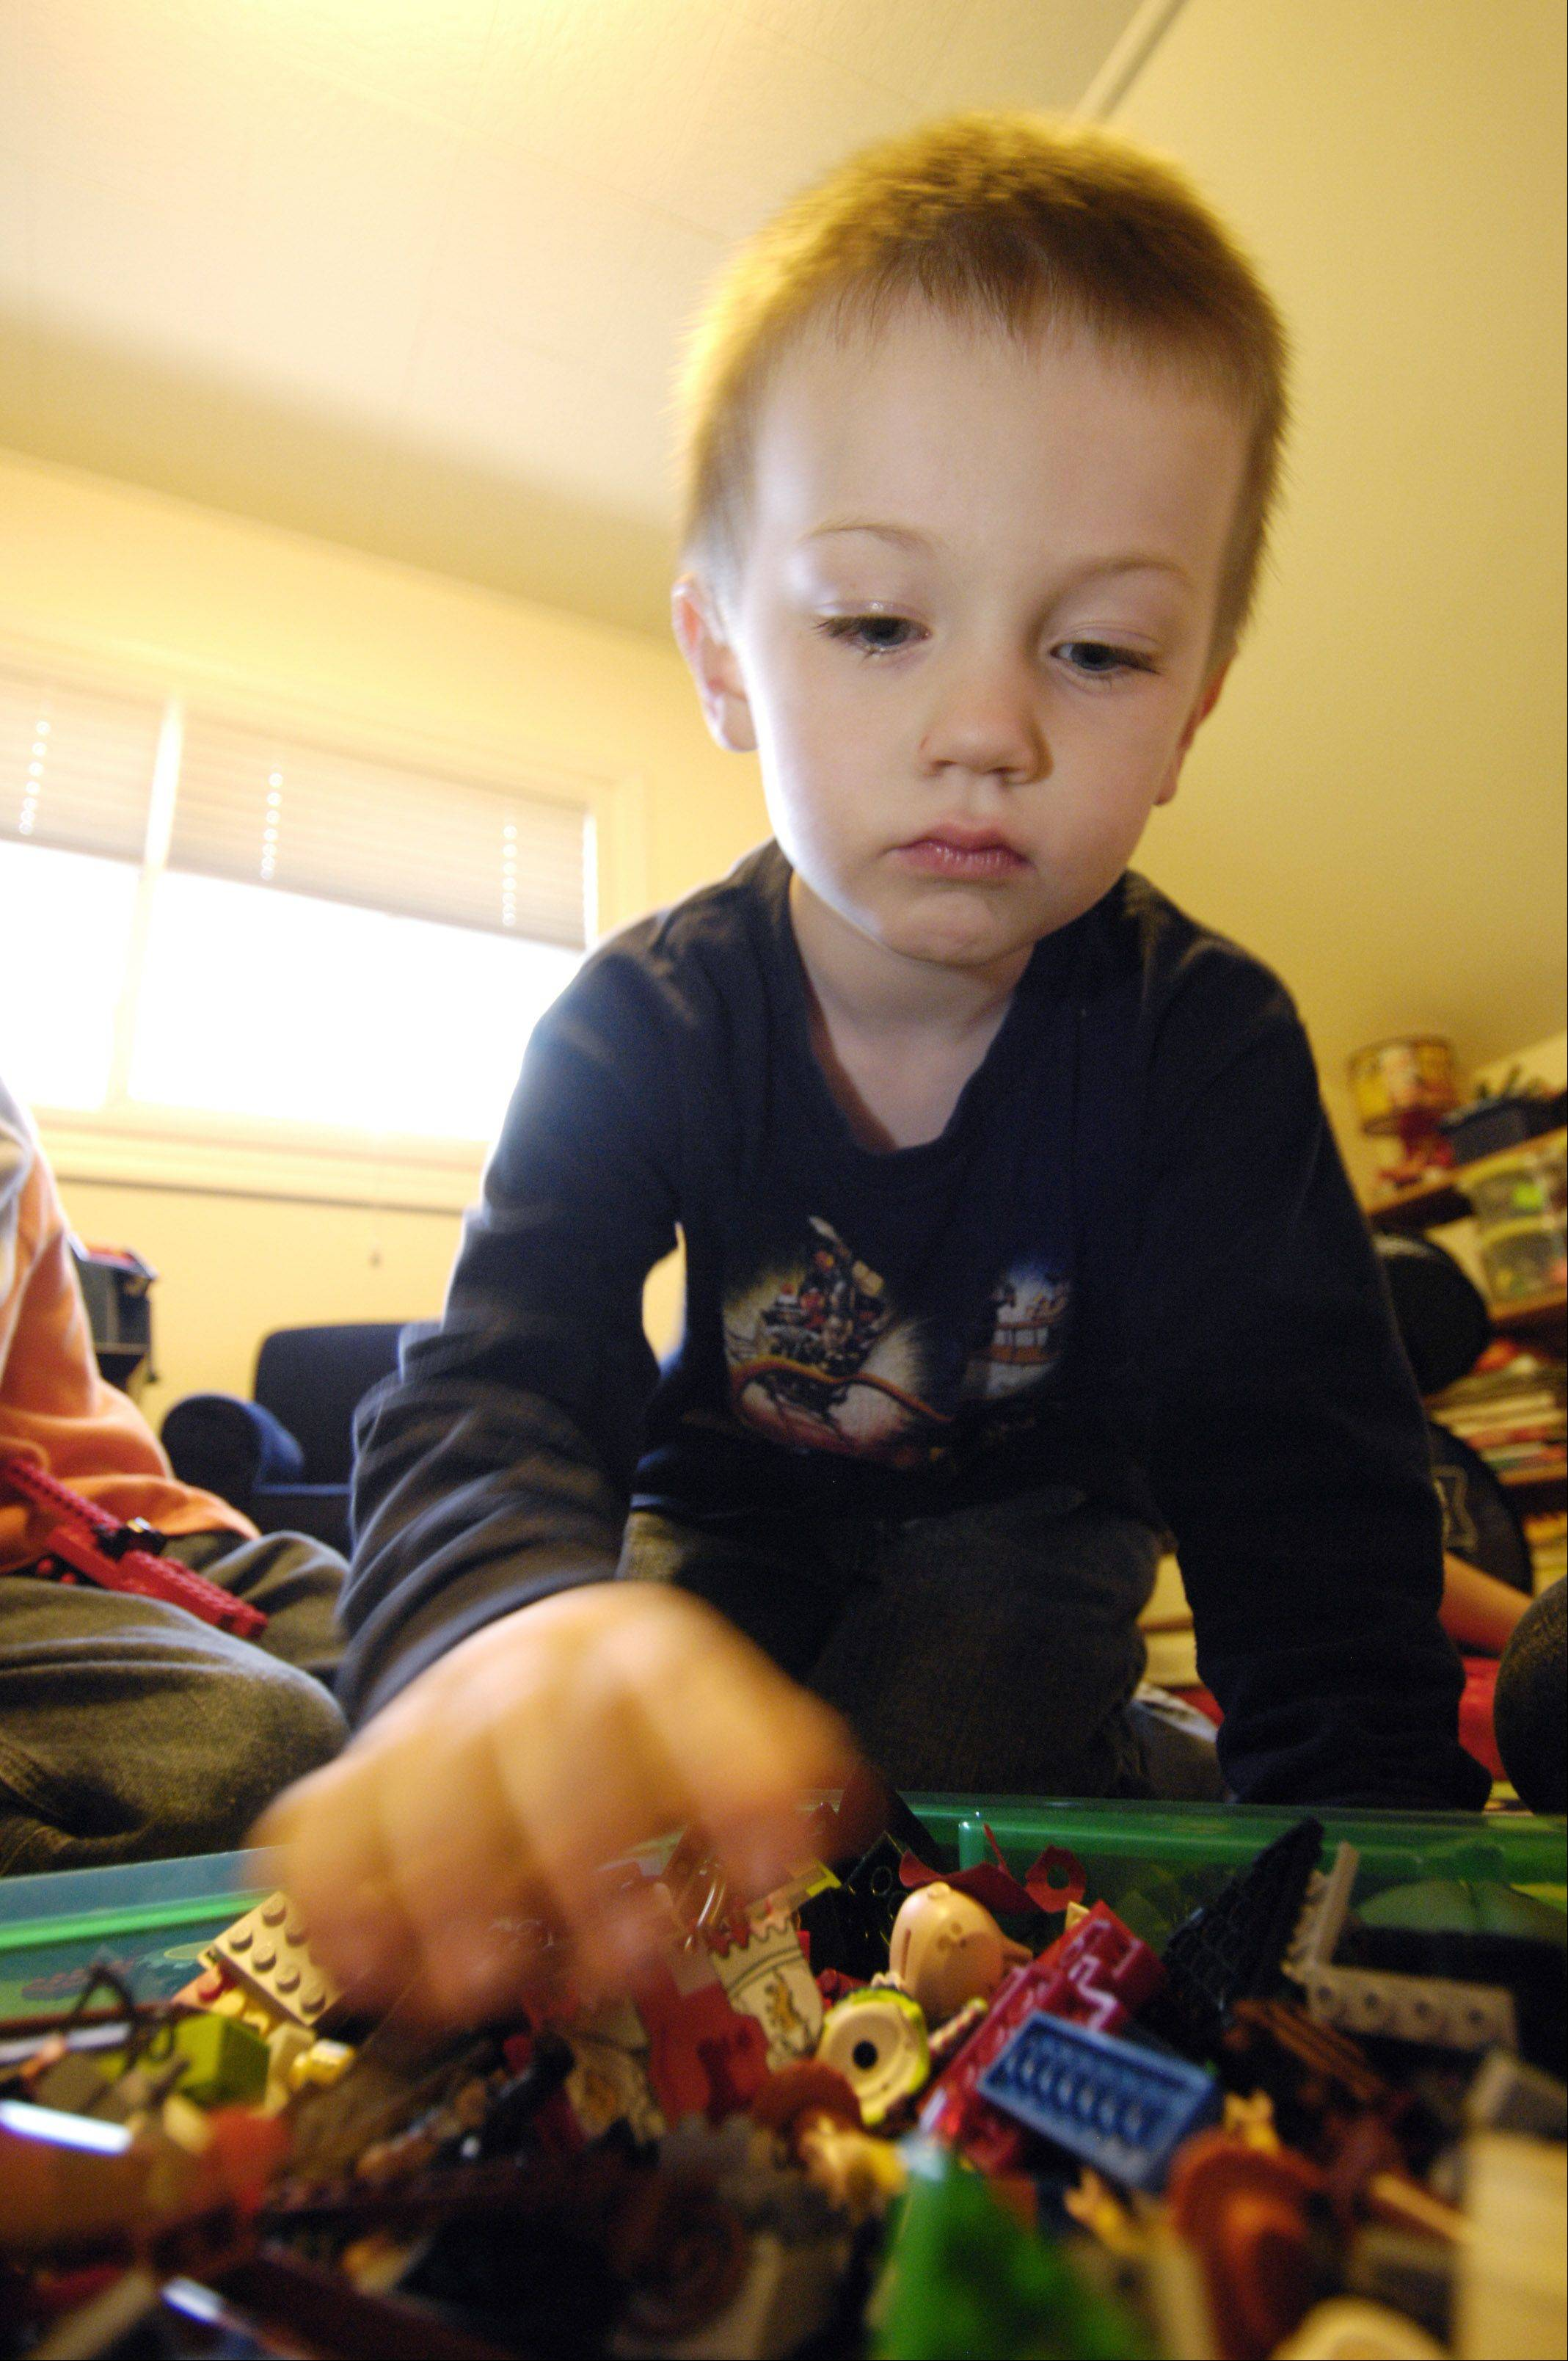 Jeremy Howard, 4, digs for some Legos.